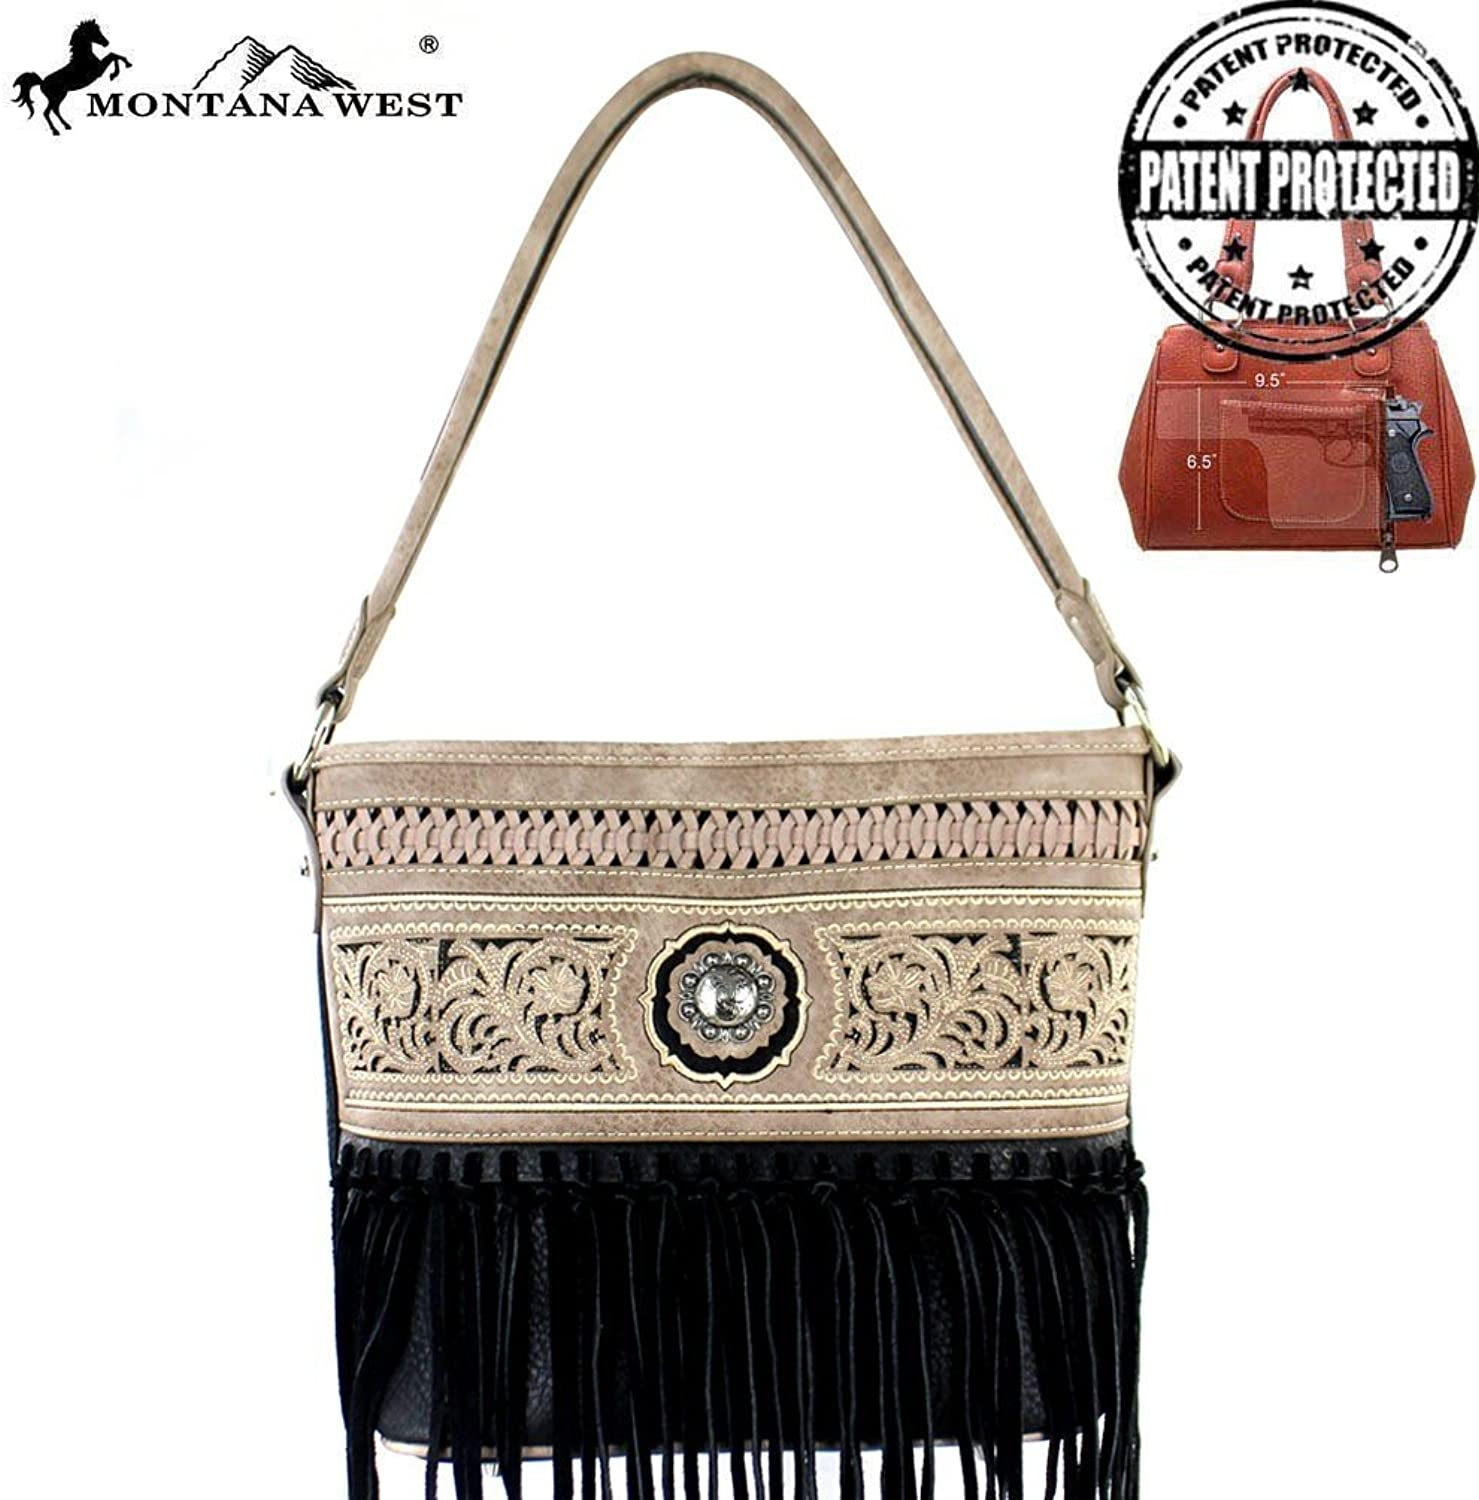 MW352G916 Montana West Fringe Collection Concealed Handgun Hobo BagBrown